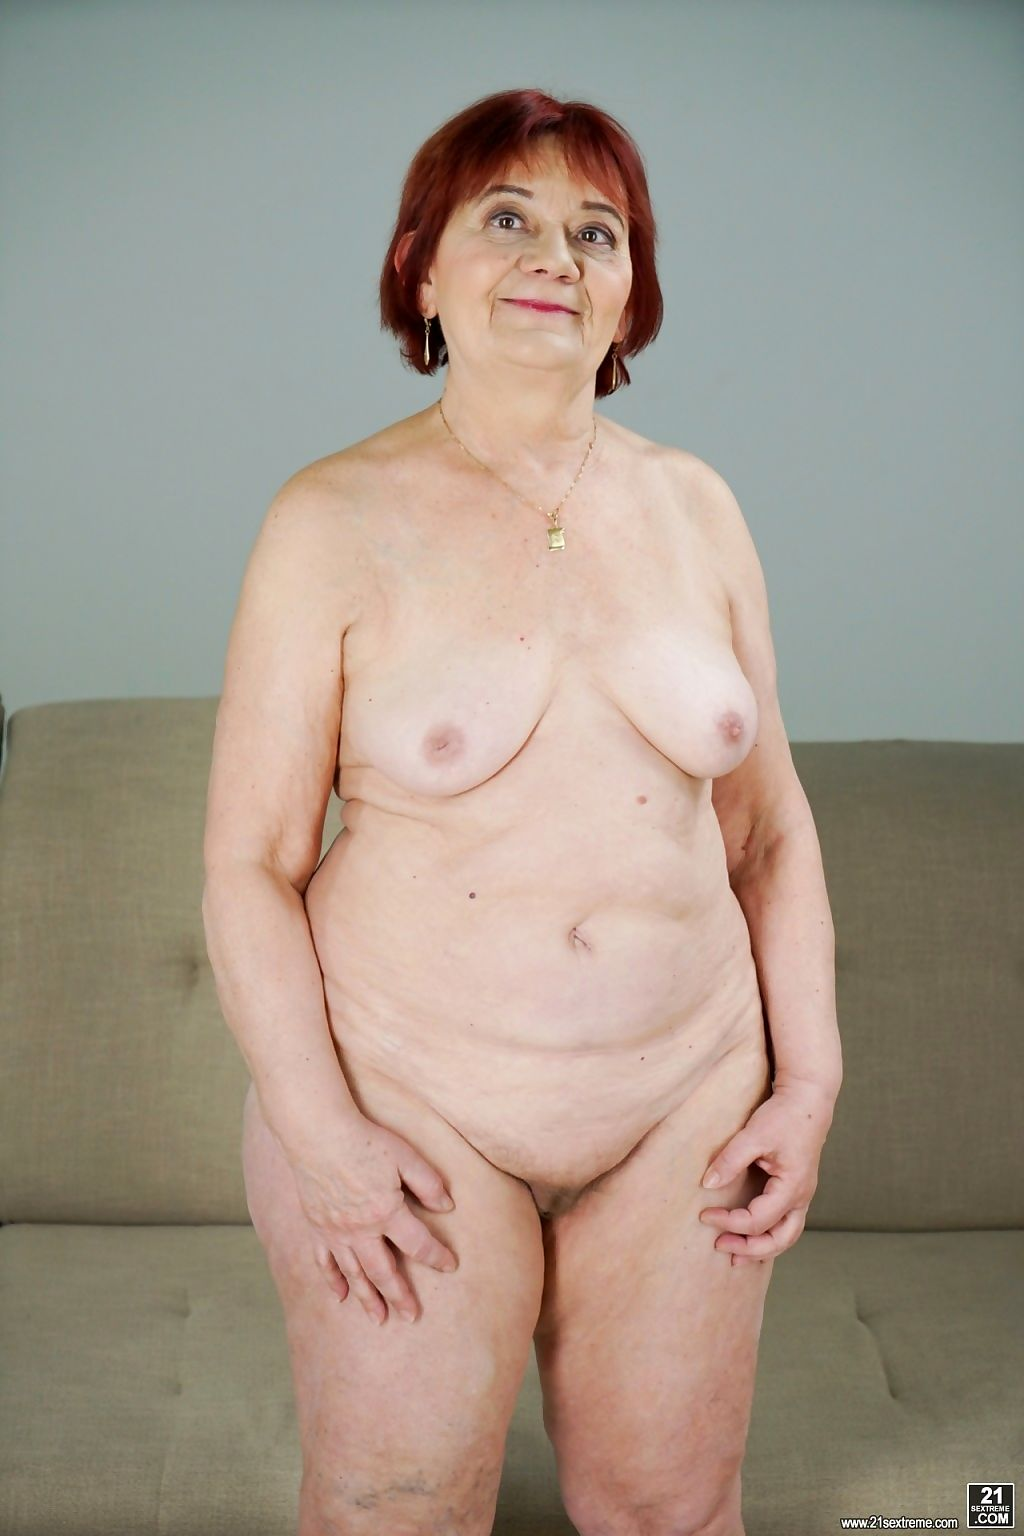 Redheaded granny wants some cock - part 203